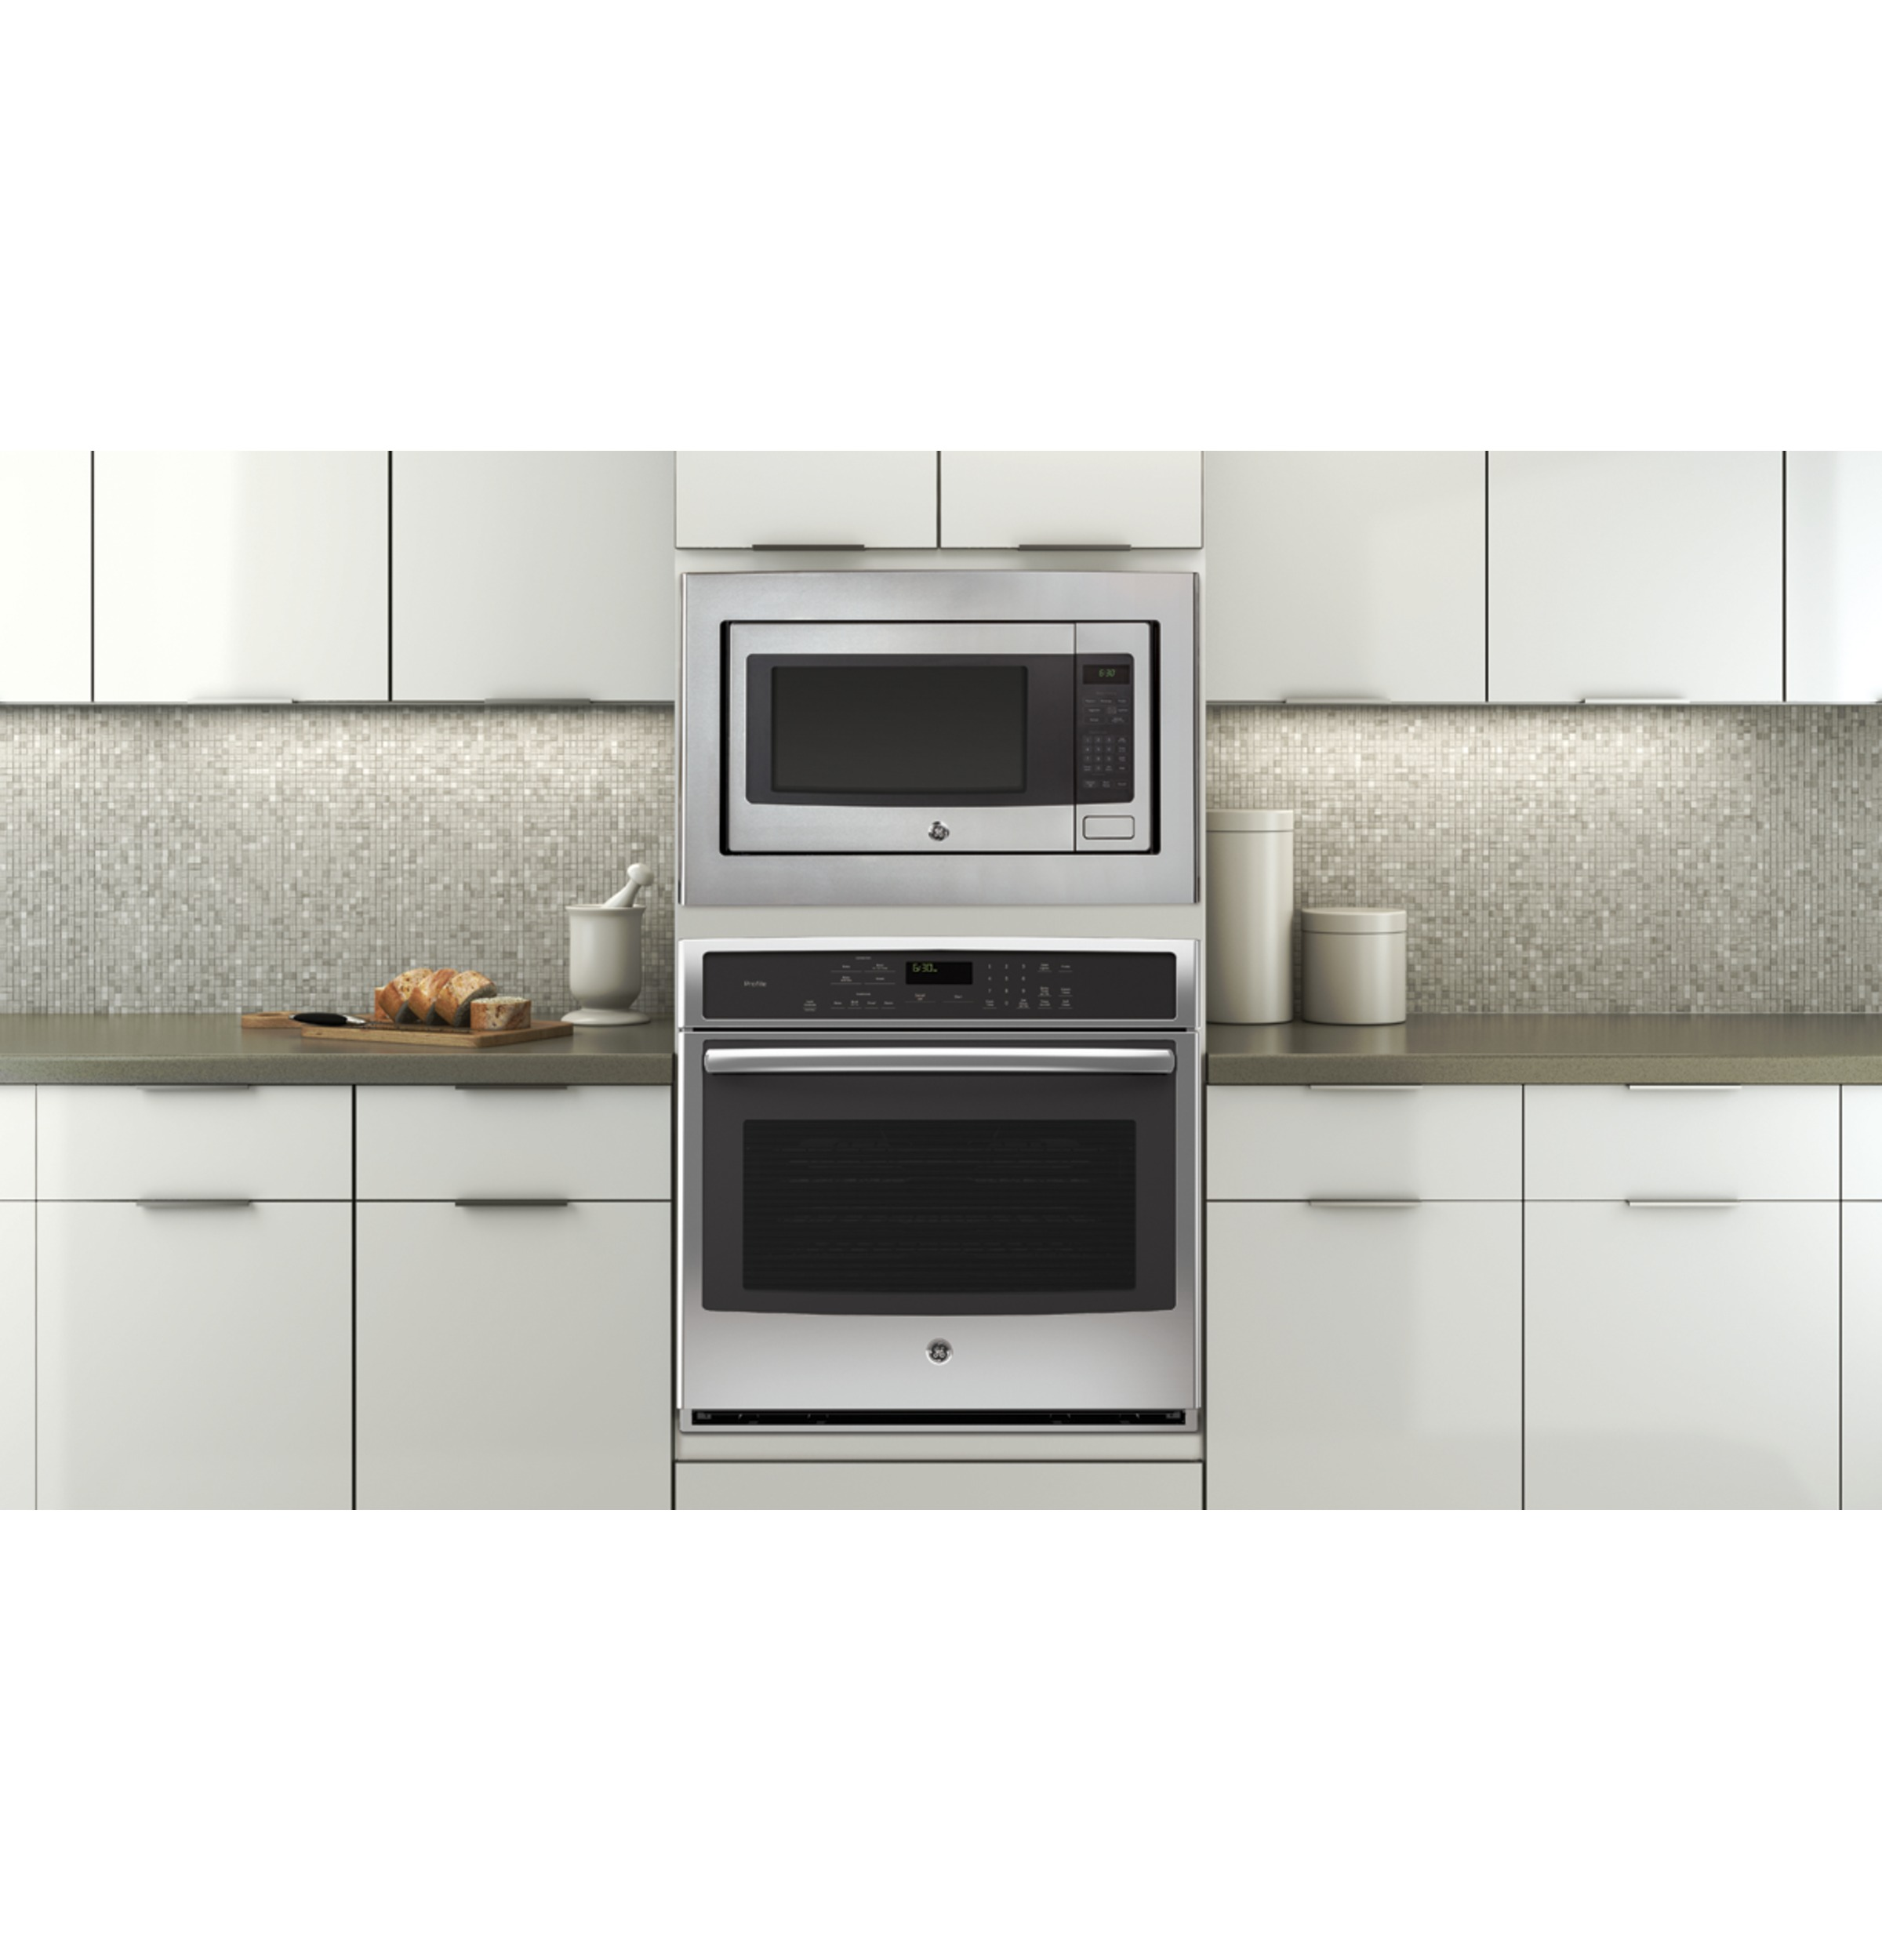 Built in microwave oven with trim kit - Product Image Product Image Product Image Product Image Product Image